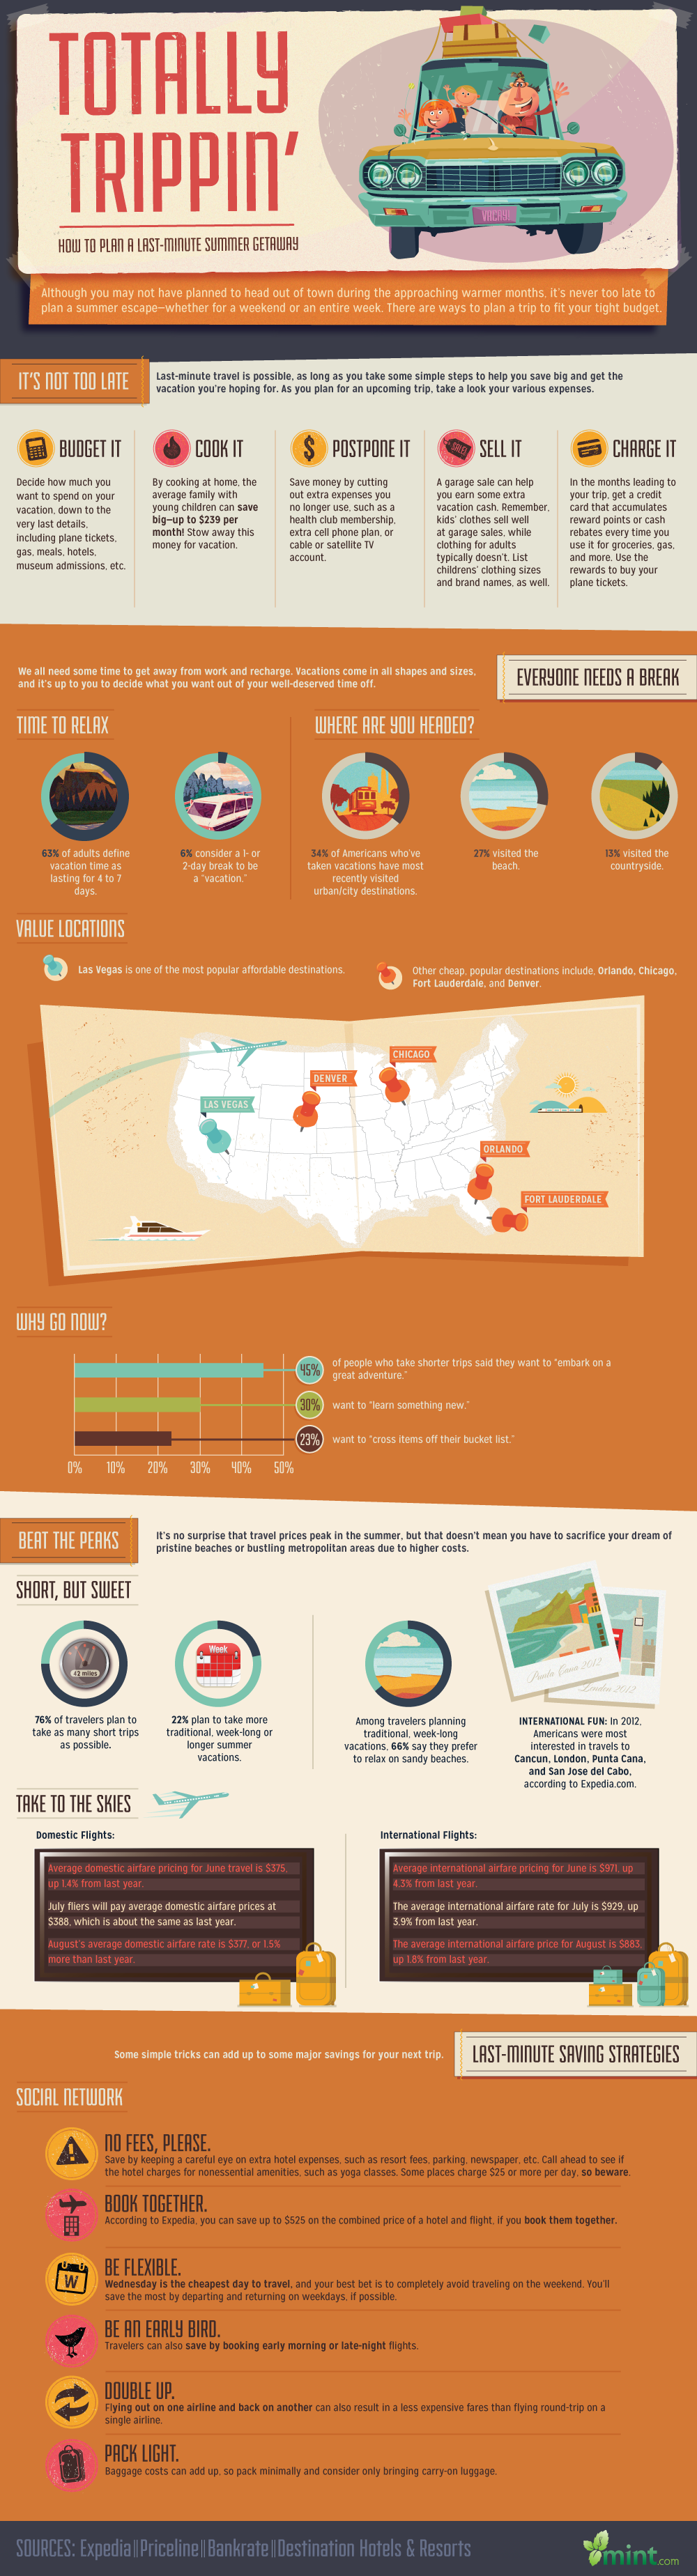 Infographic: Totally Trippin': How to Plan a Last-Minute Summer Getaway